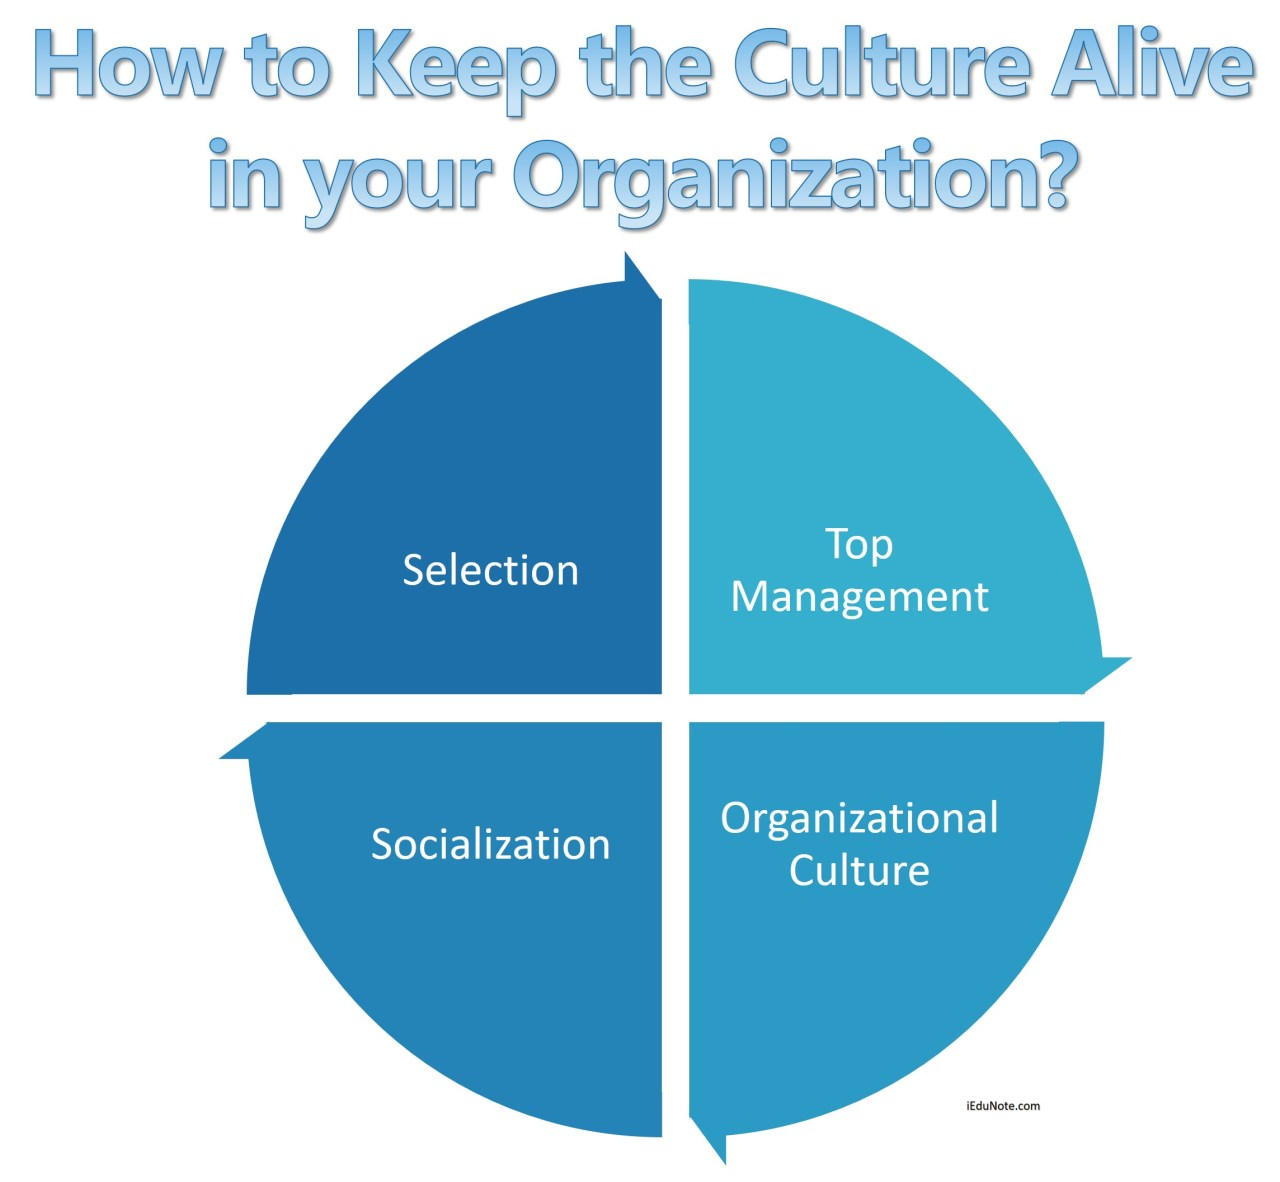 How to Keep the Culture Alive in your Organization?